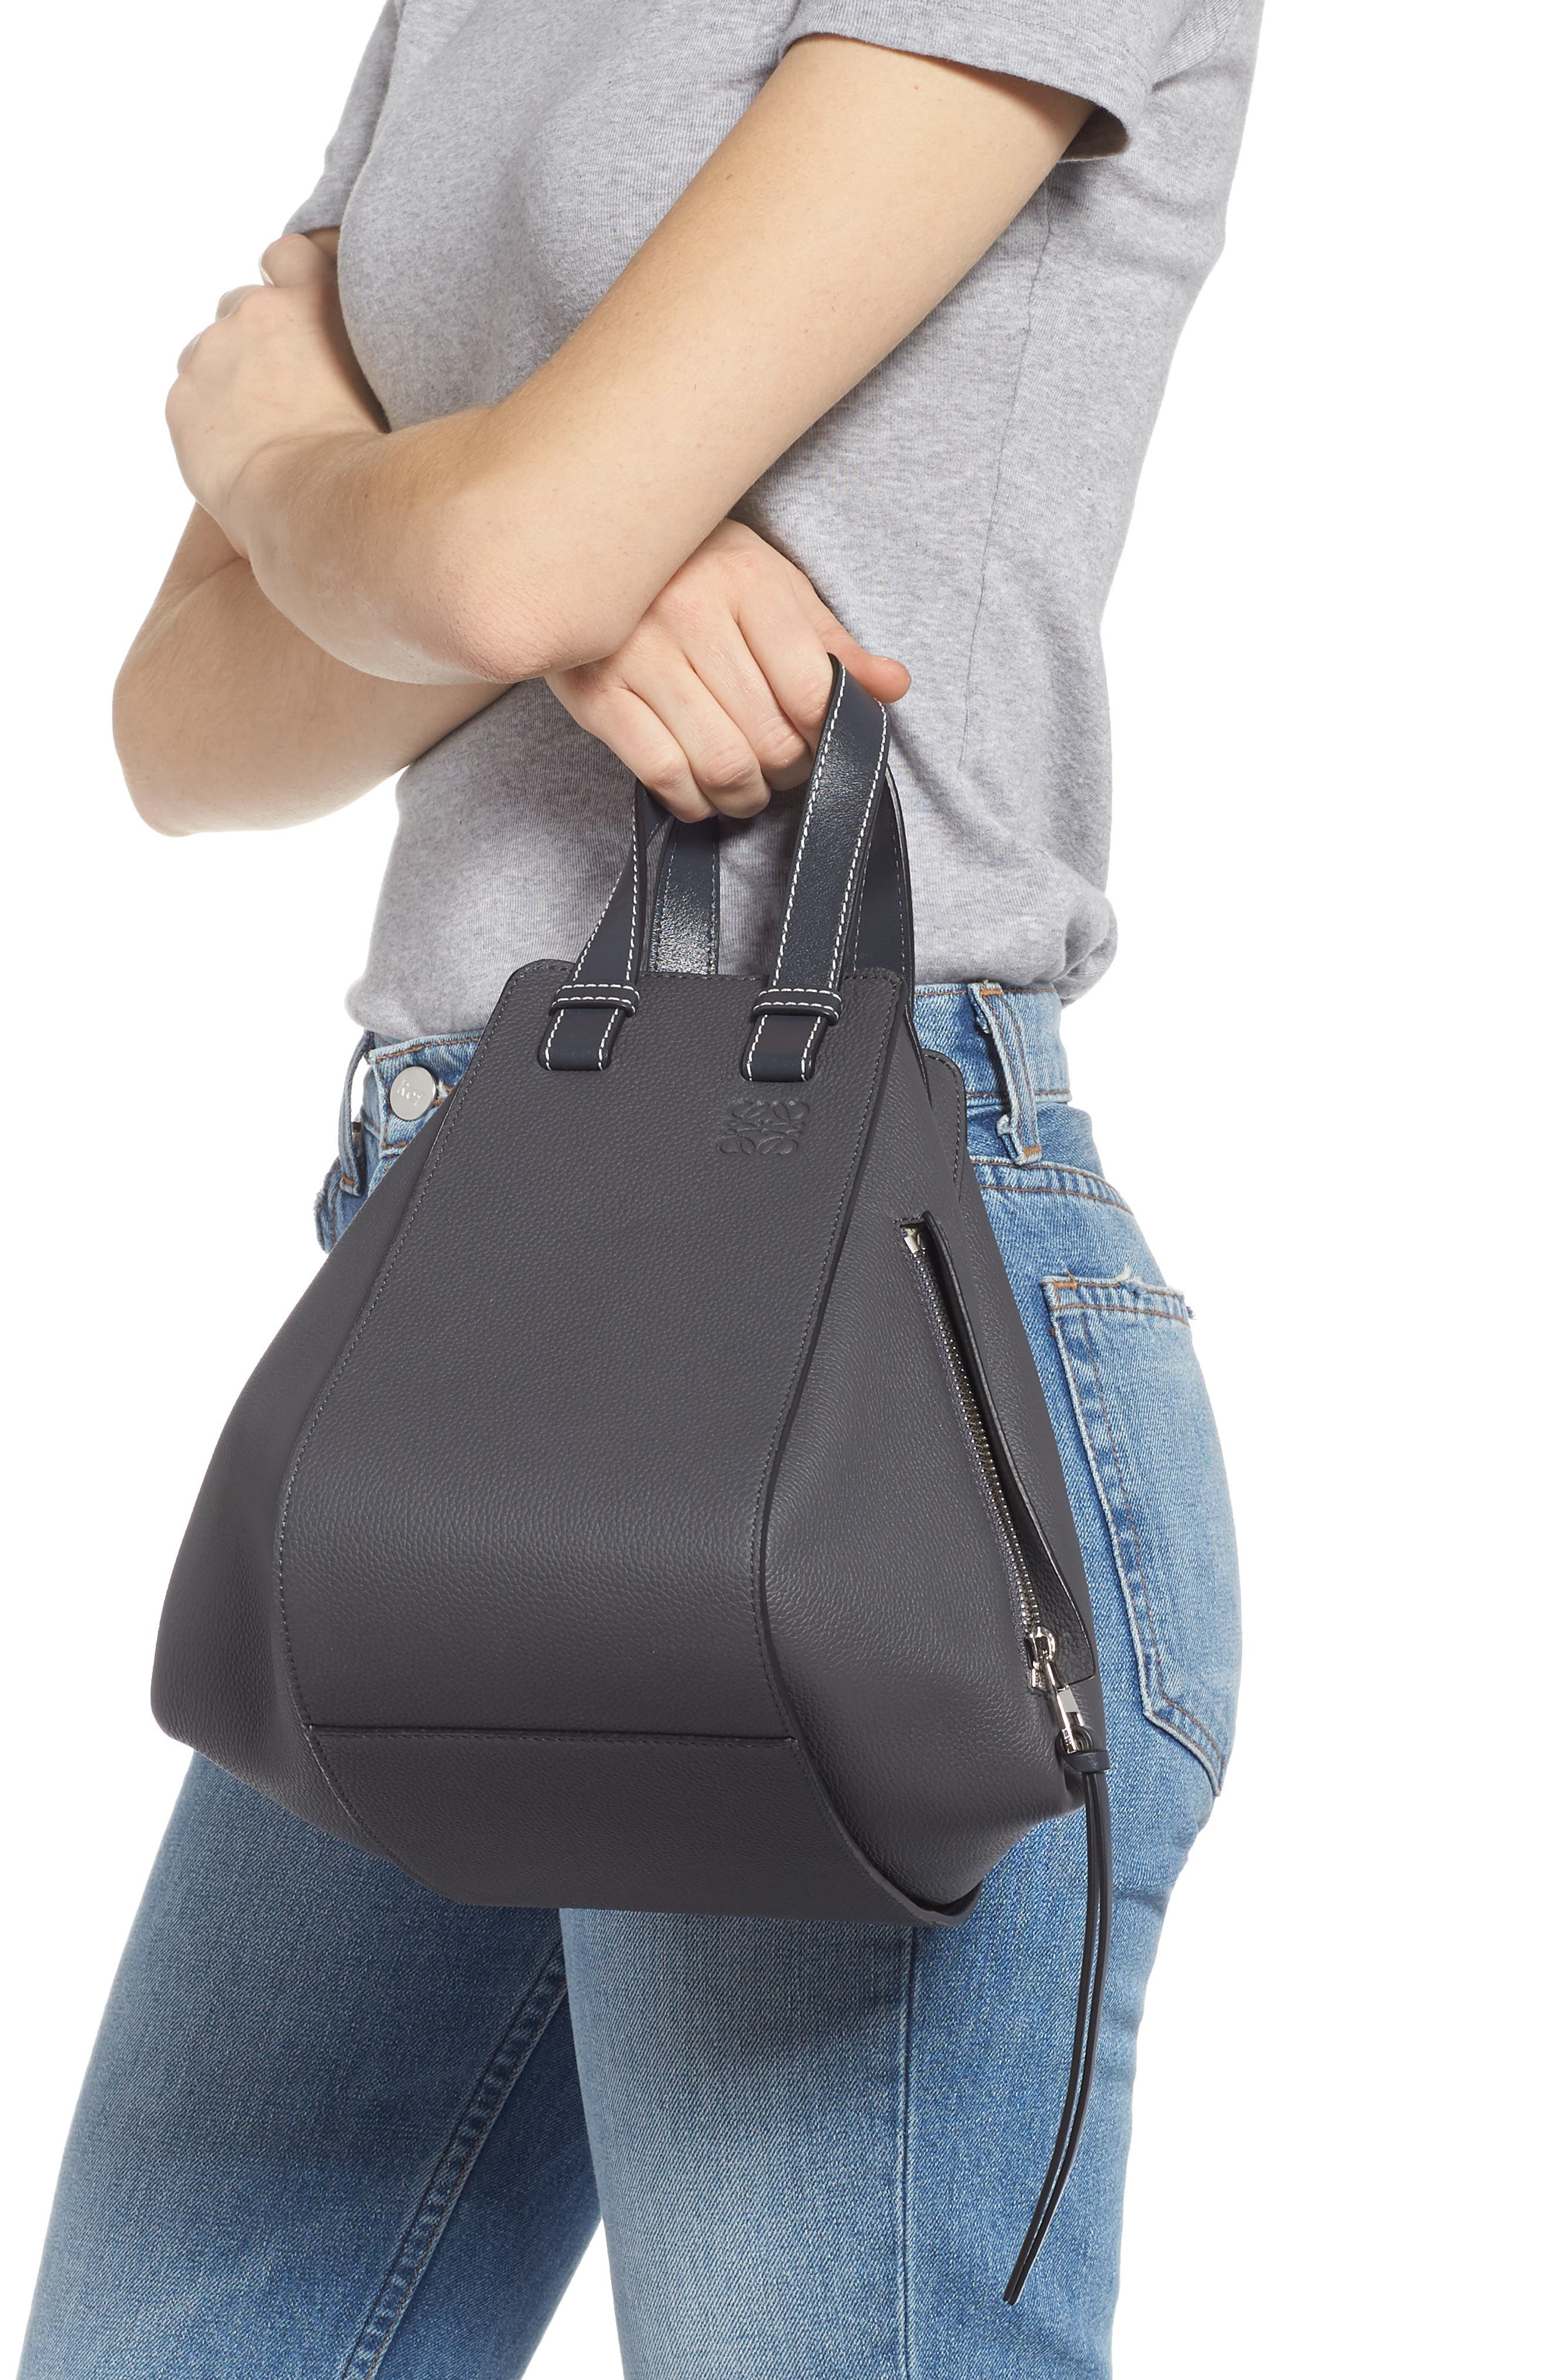 LOEWE,                             Small Hammock Pebbled Leather Hobo,                             Alternate thumbnail 3, color,                             ANTHRACITE